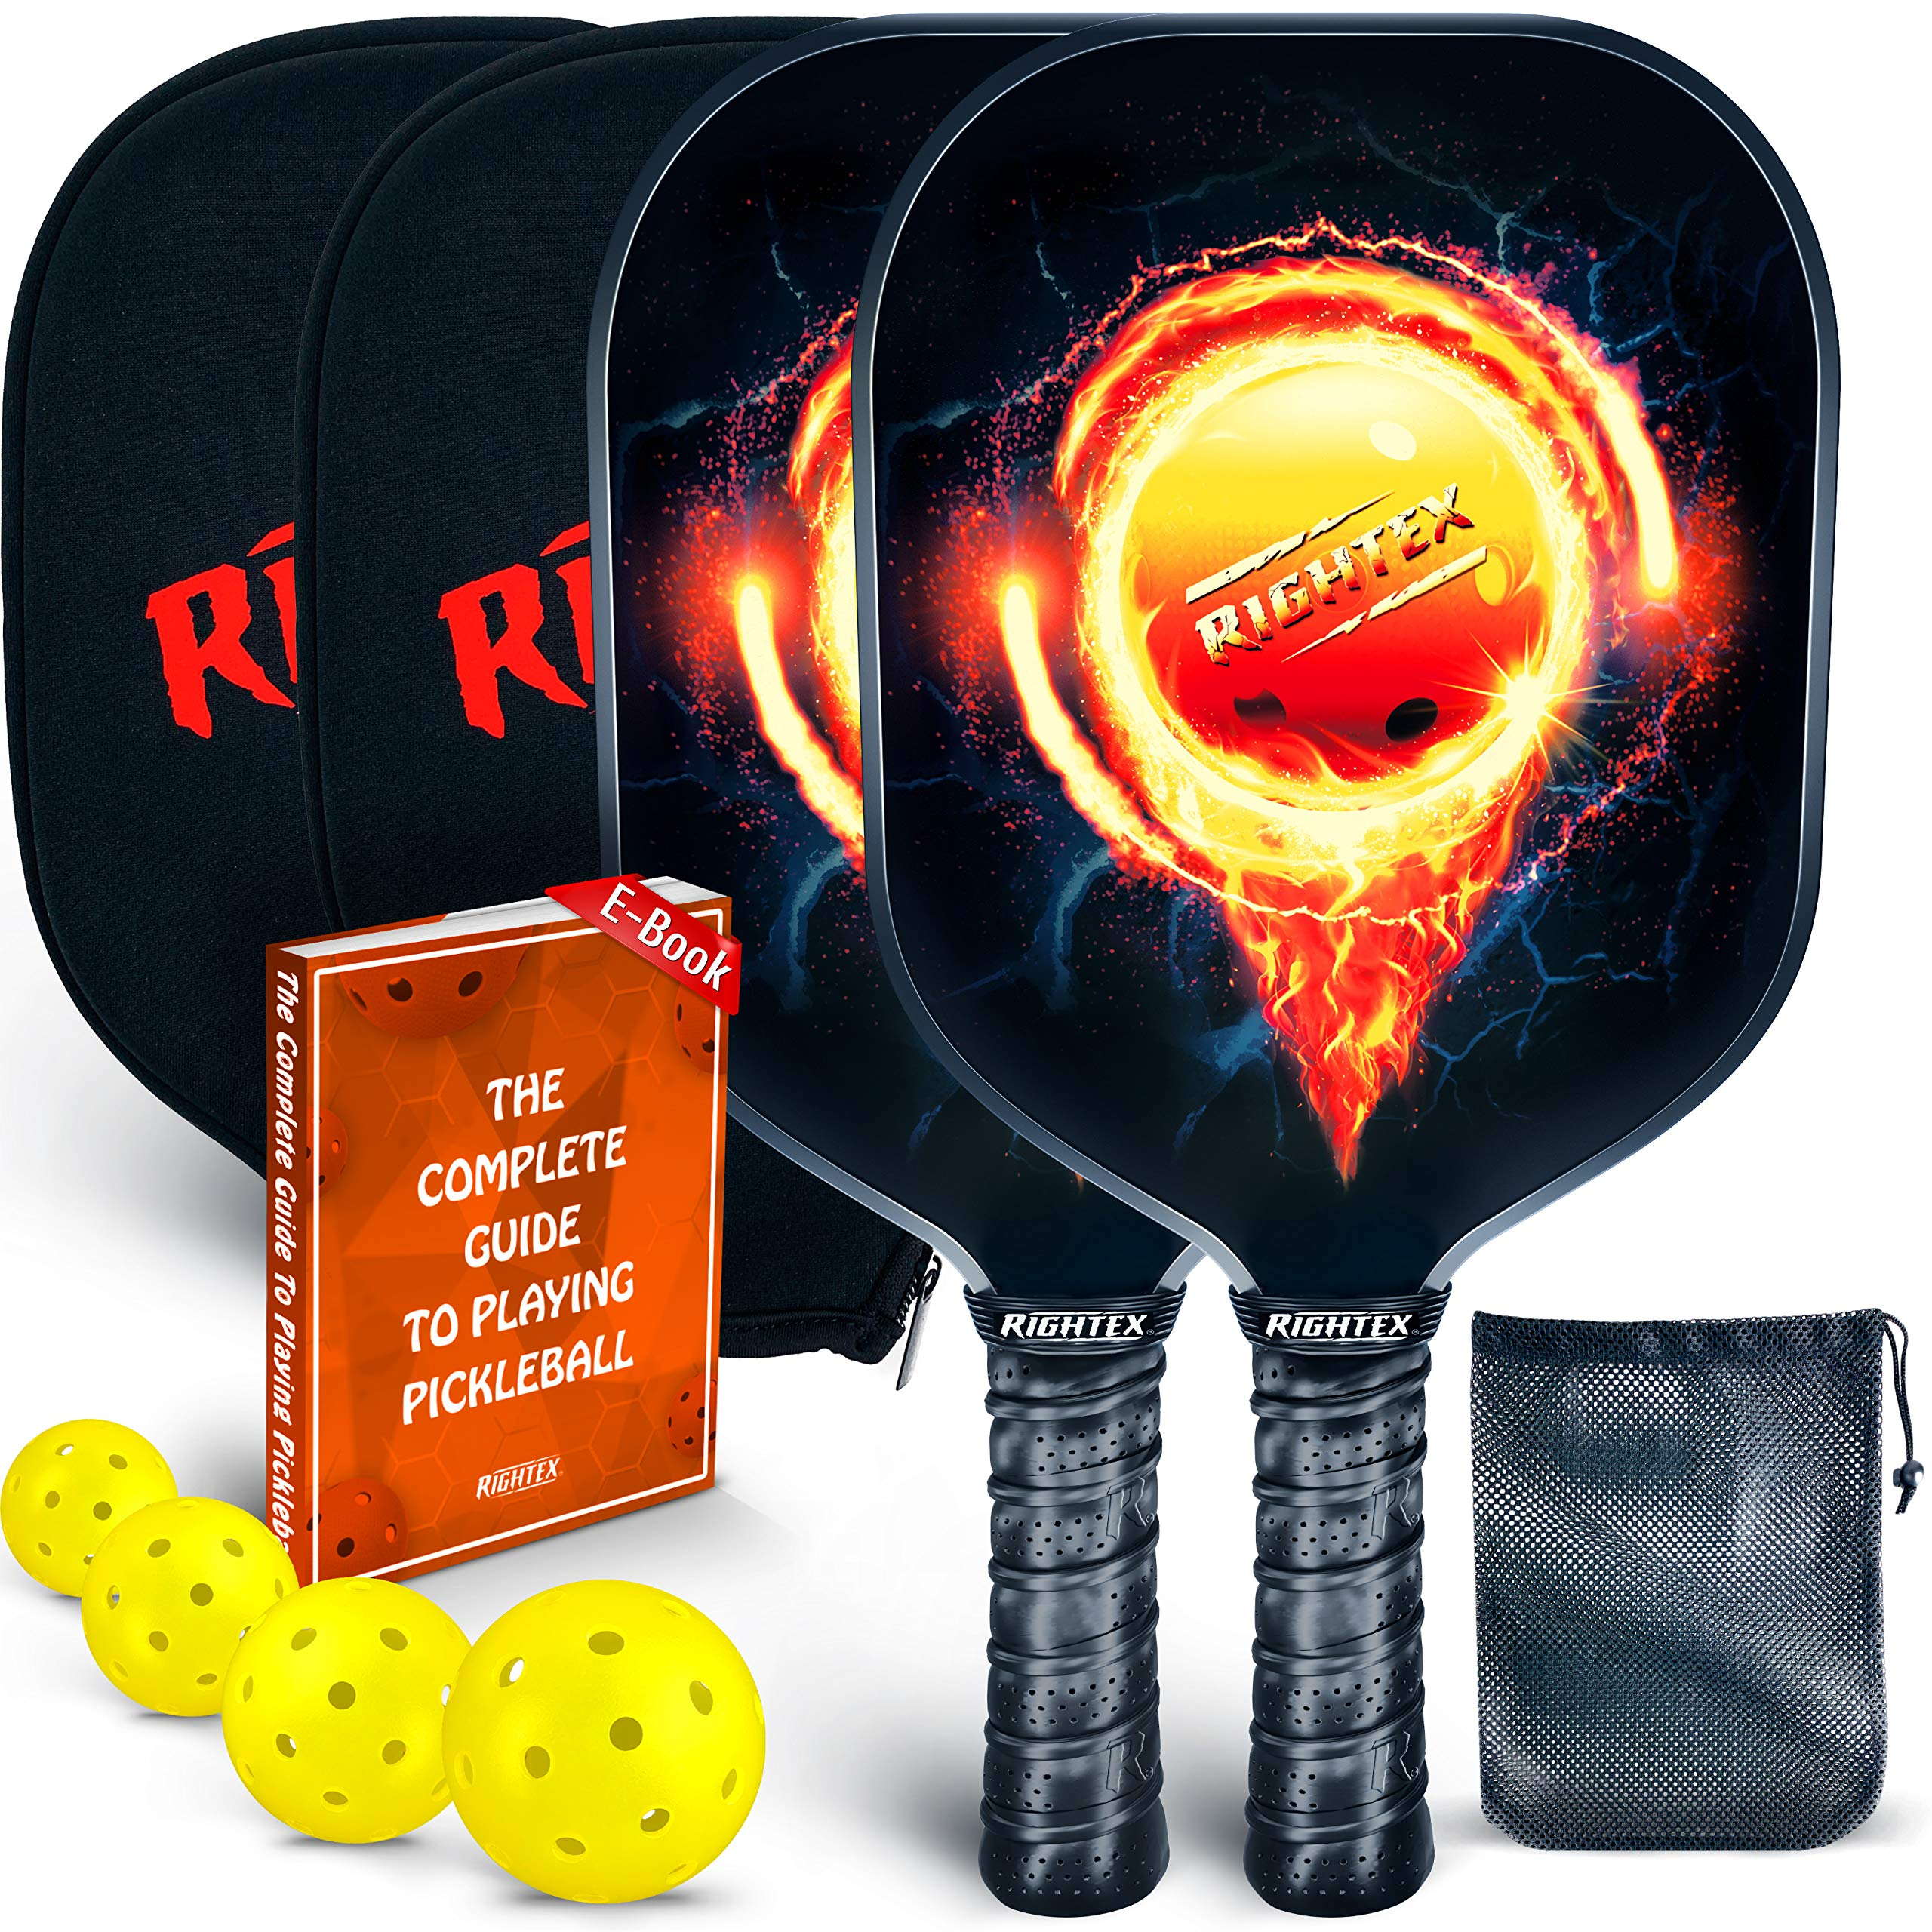 Rightex Pickleball Paddle Racket Set - Graphite Surface & Polypropylene Honeycomb Core - Includes 2 Graphite Paddles + 4 x 40 Hole USAPA Balls + 1 Net Pickleball Carrying Bag + 2 Paddle Covers by Rightex